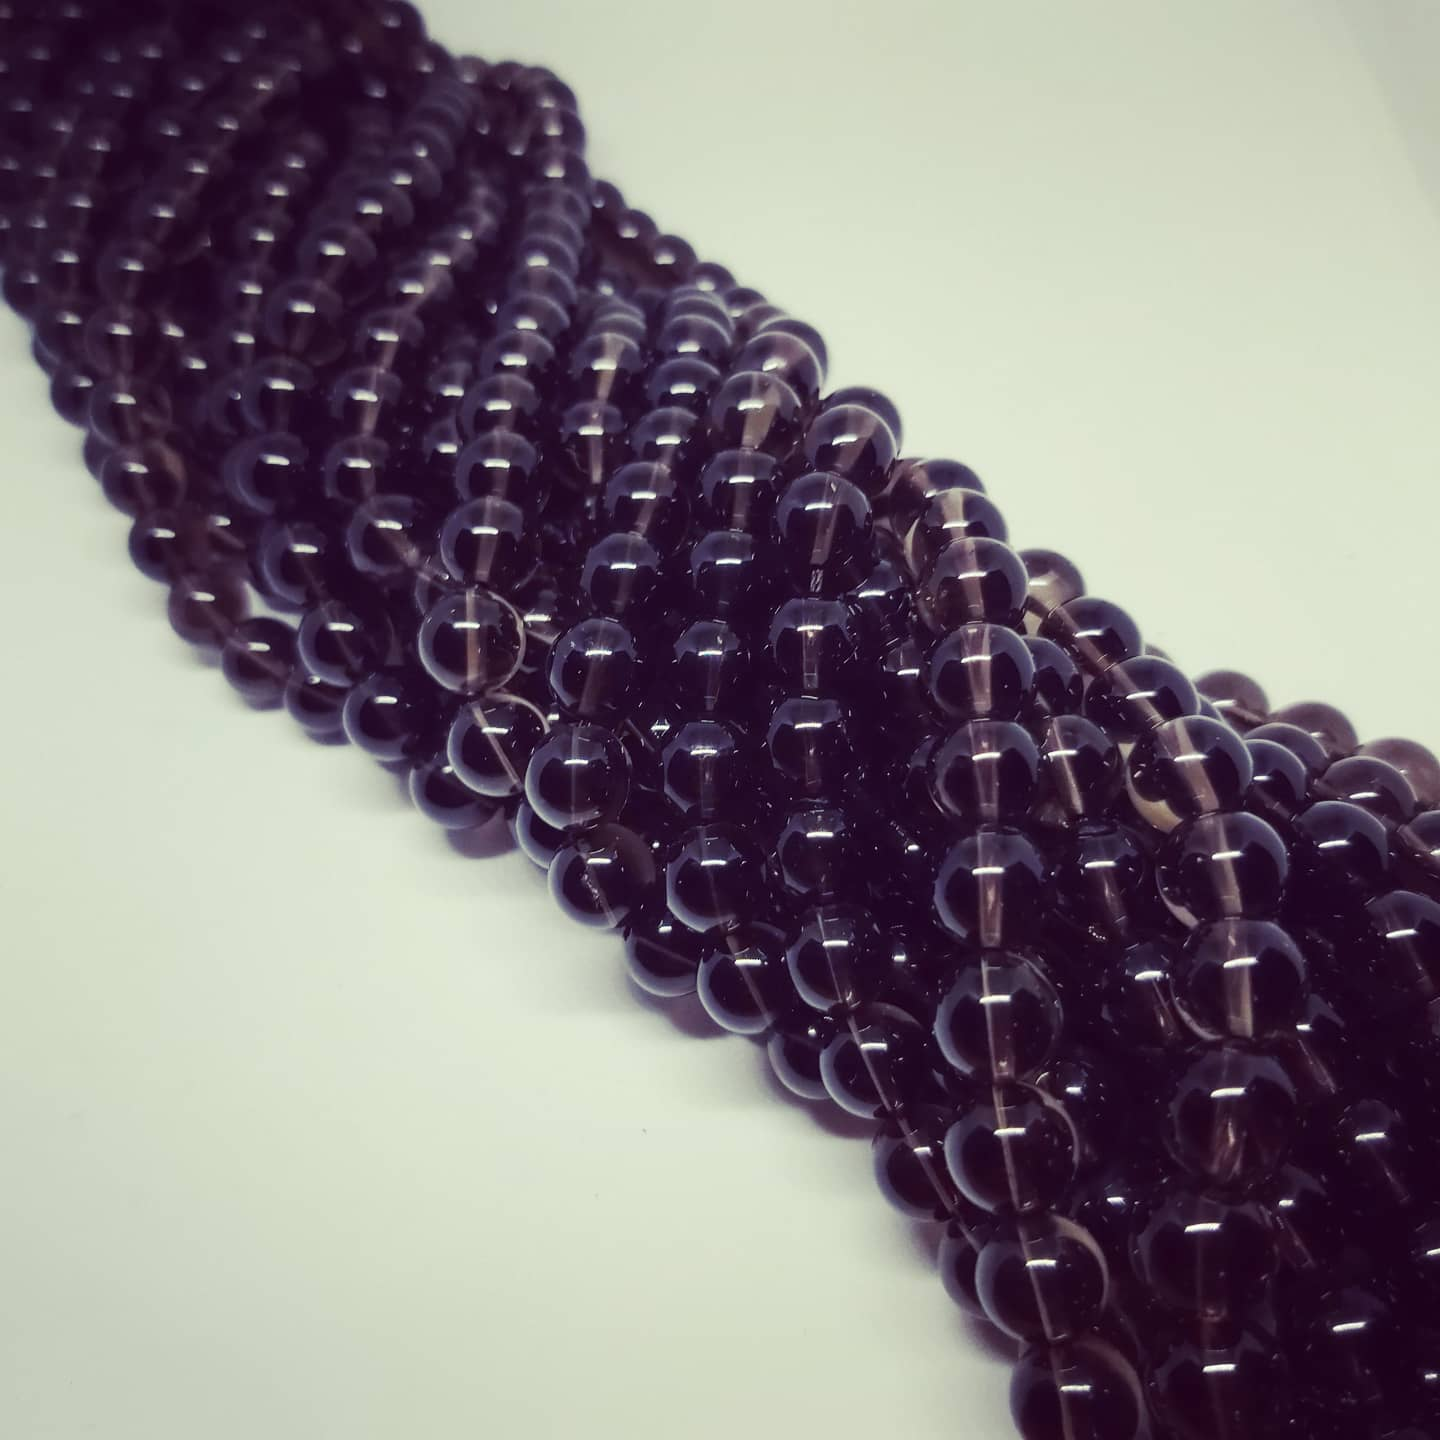 Smoky Quartz Beads (10mm)